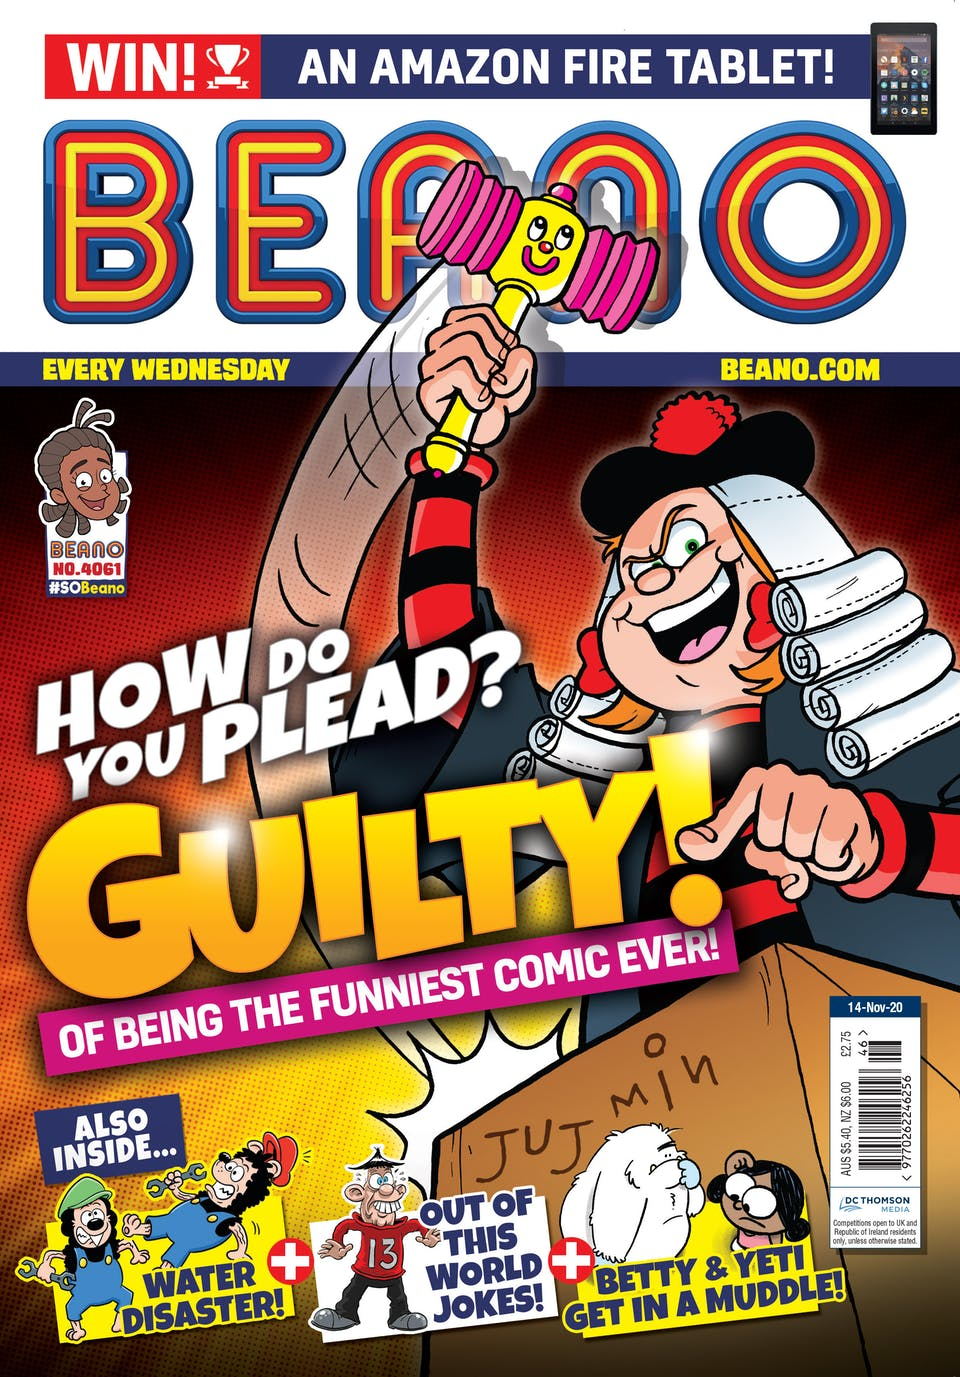 Inside Beano no. 4061 - Judge Minnie is Laying Down The Law!